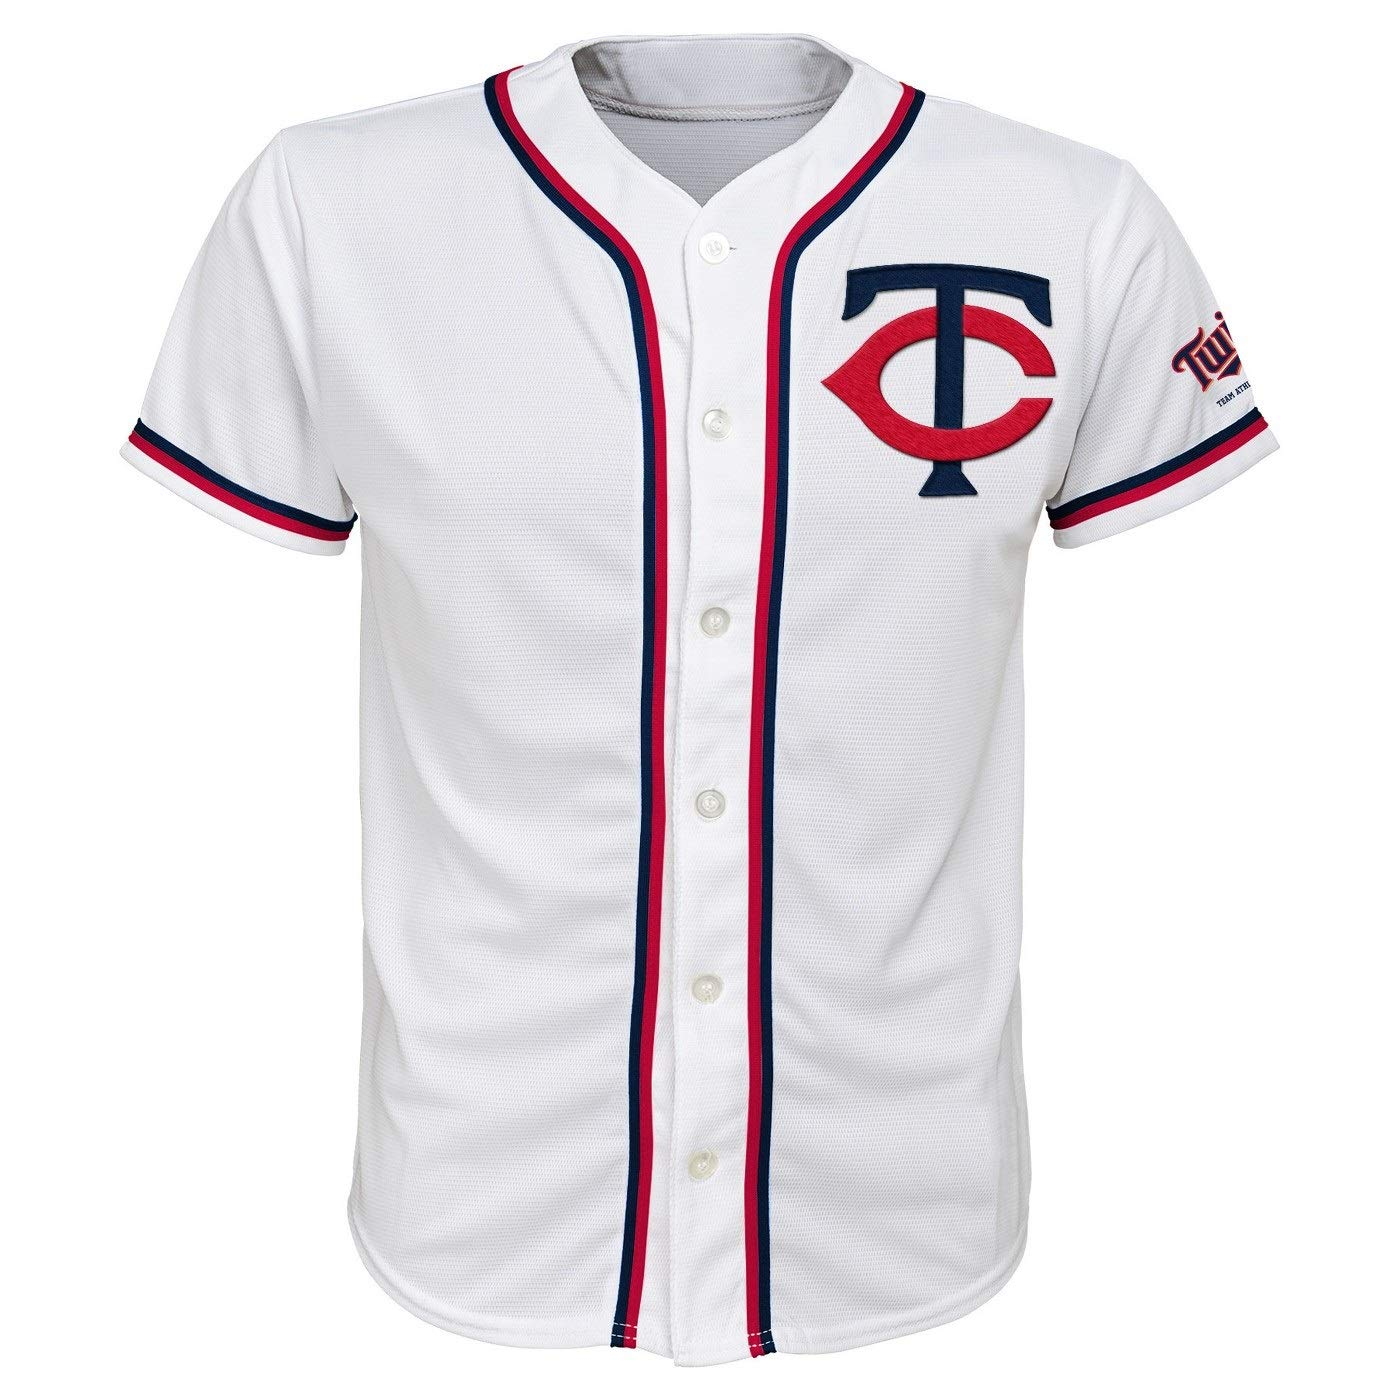 bdfdf7e5046 Amazon.com: Outerstuff Minnesota Twins White Youth Team Apparel Home Jersey  (X-Small 4/5): Clothing